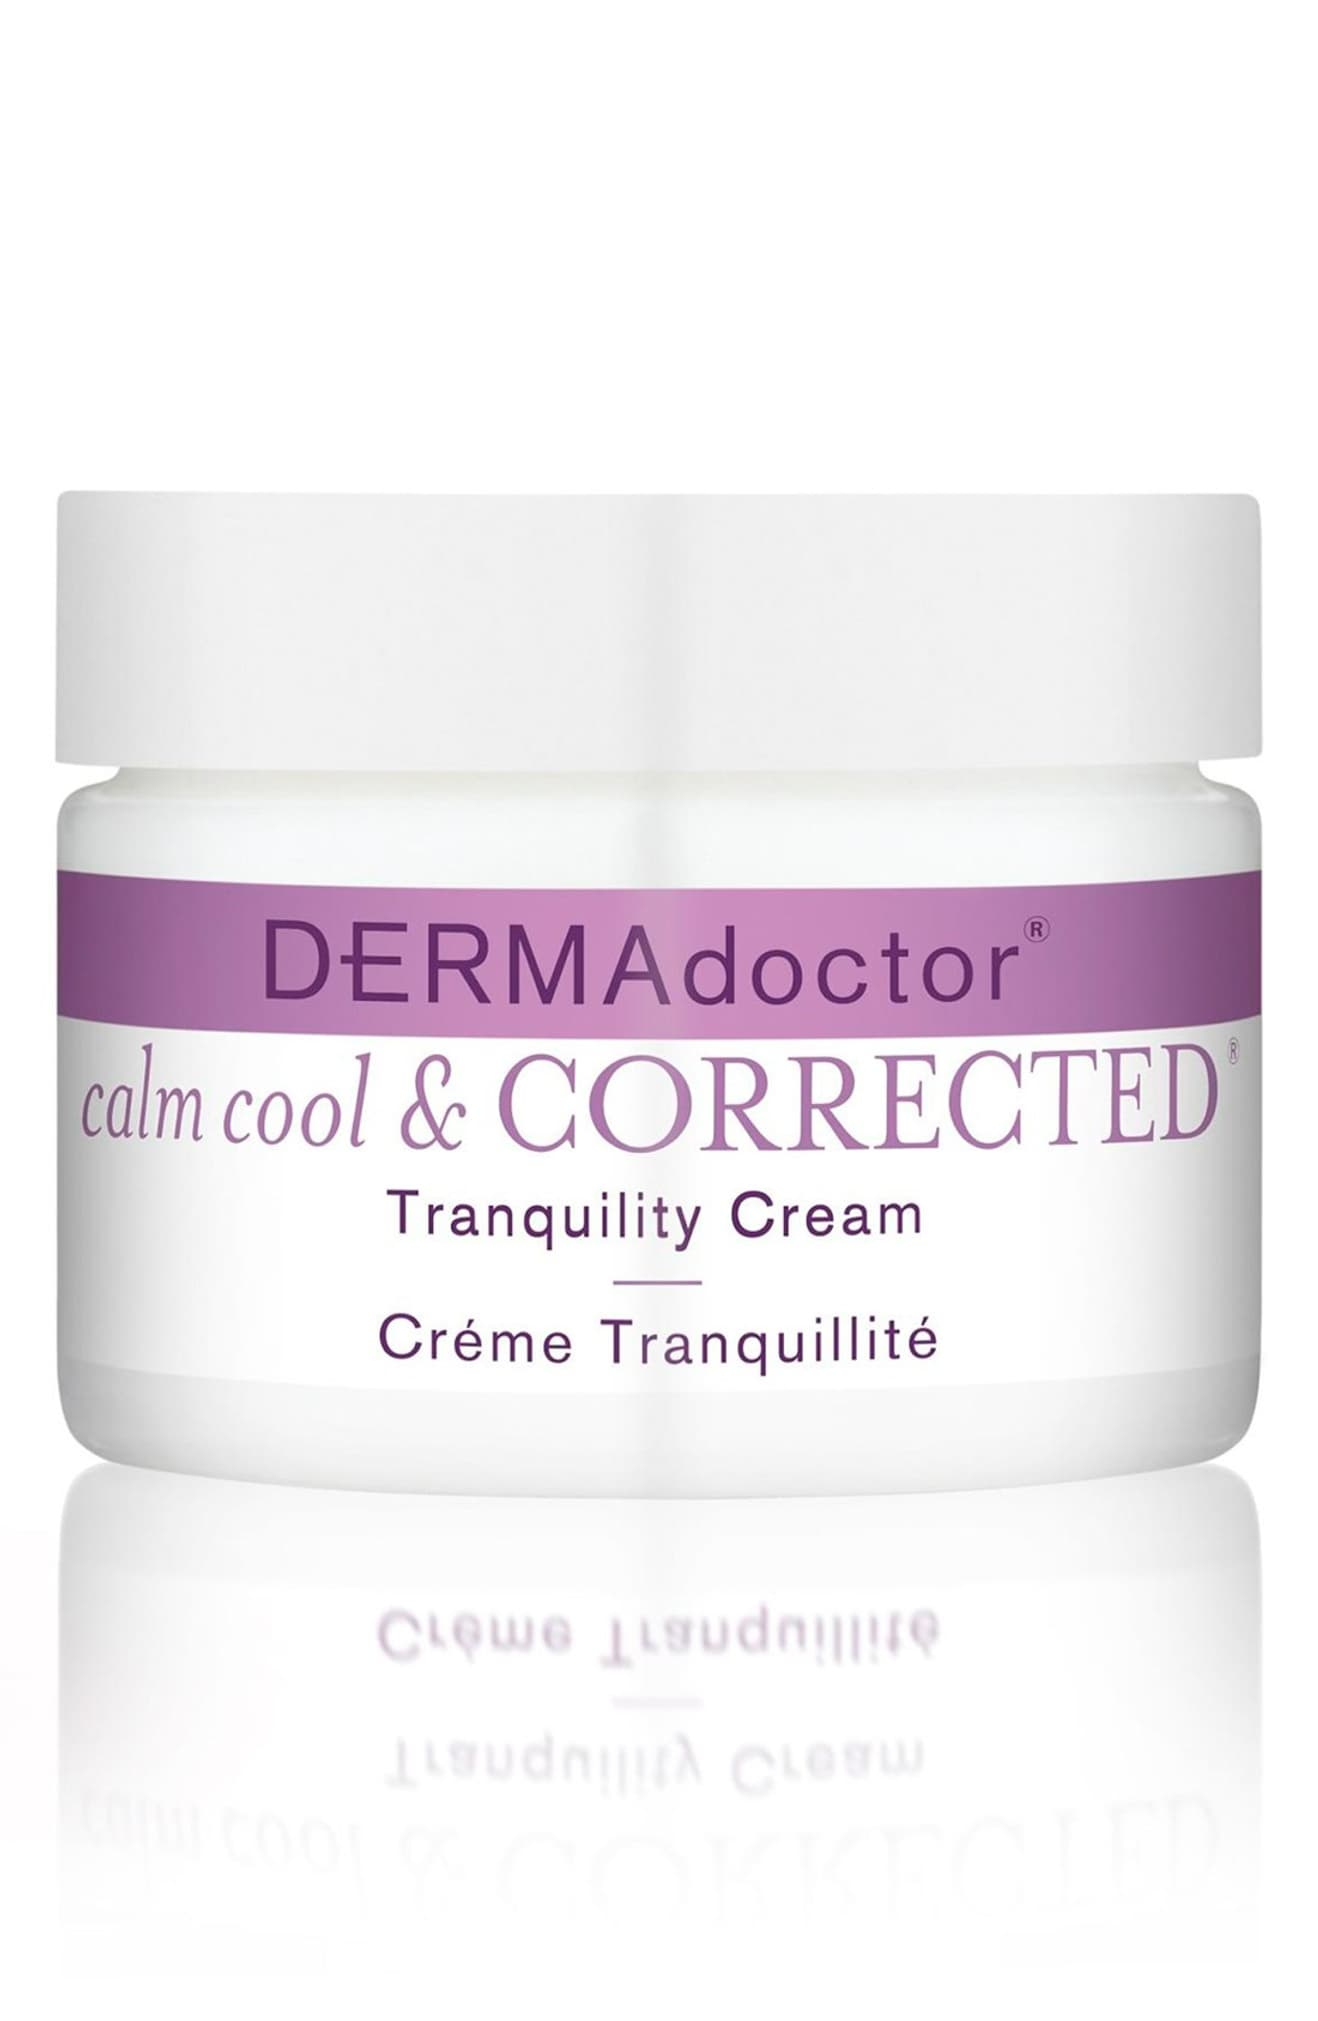 DERMADOCTOR® Calm Cool & Corrected® Anti-Redness Tranquility Cream